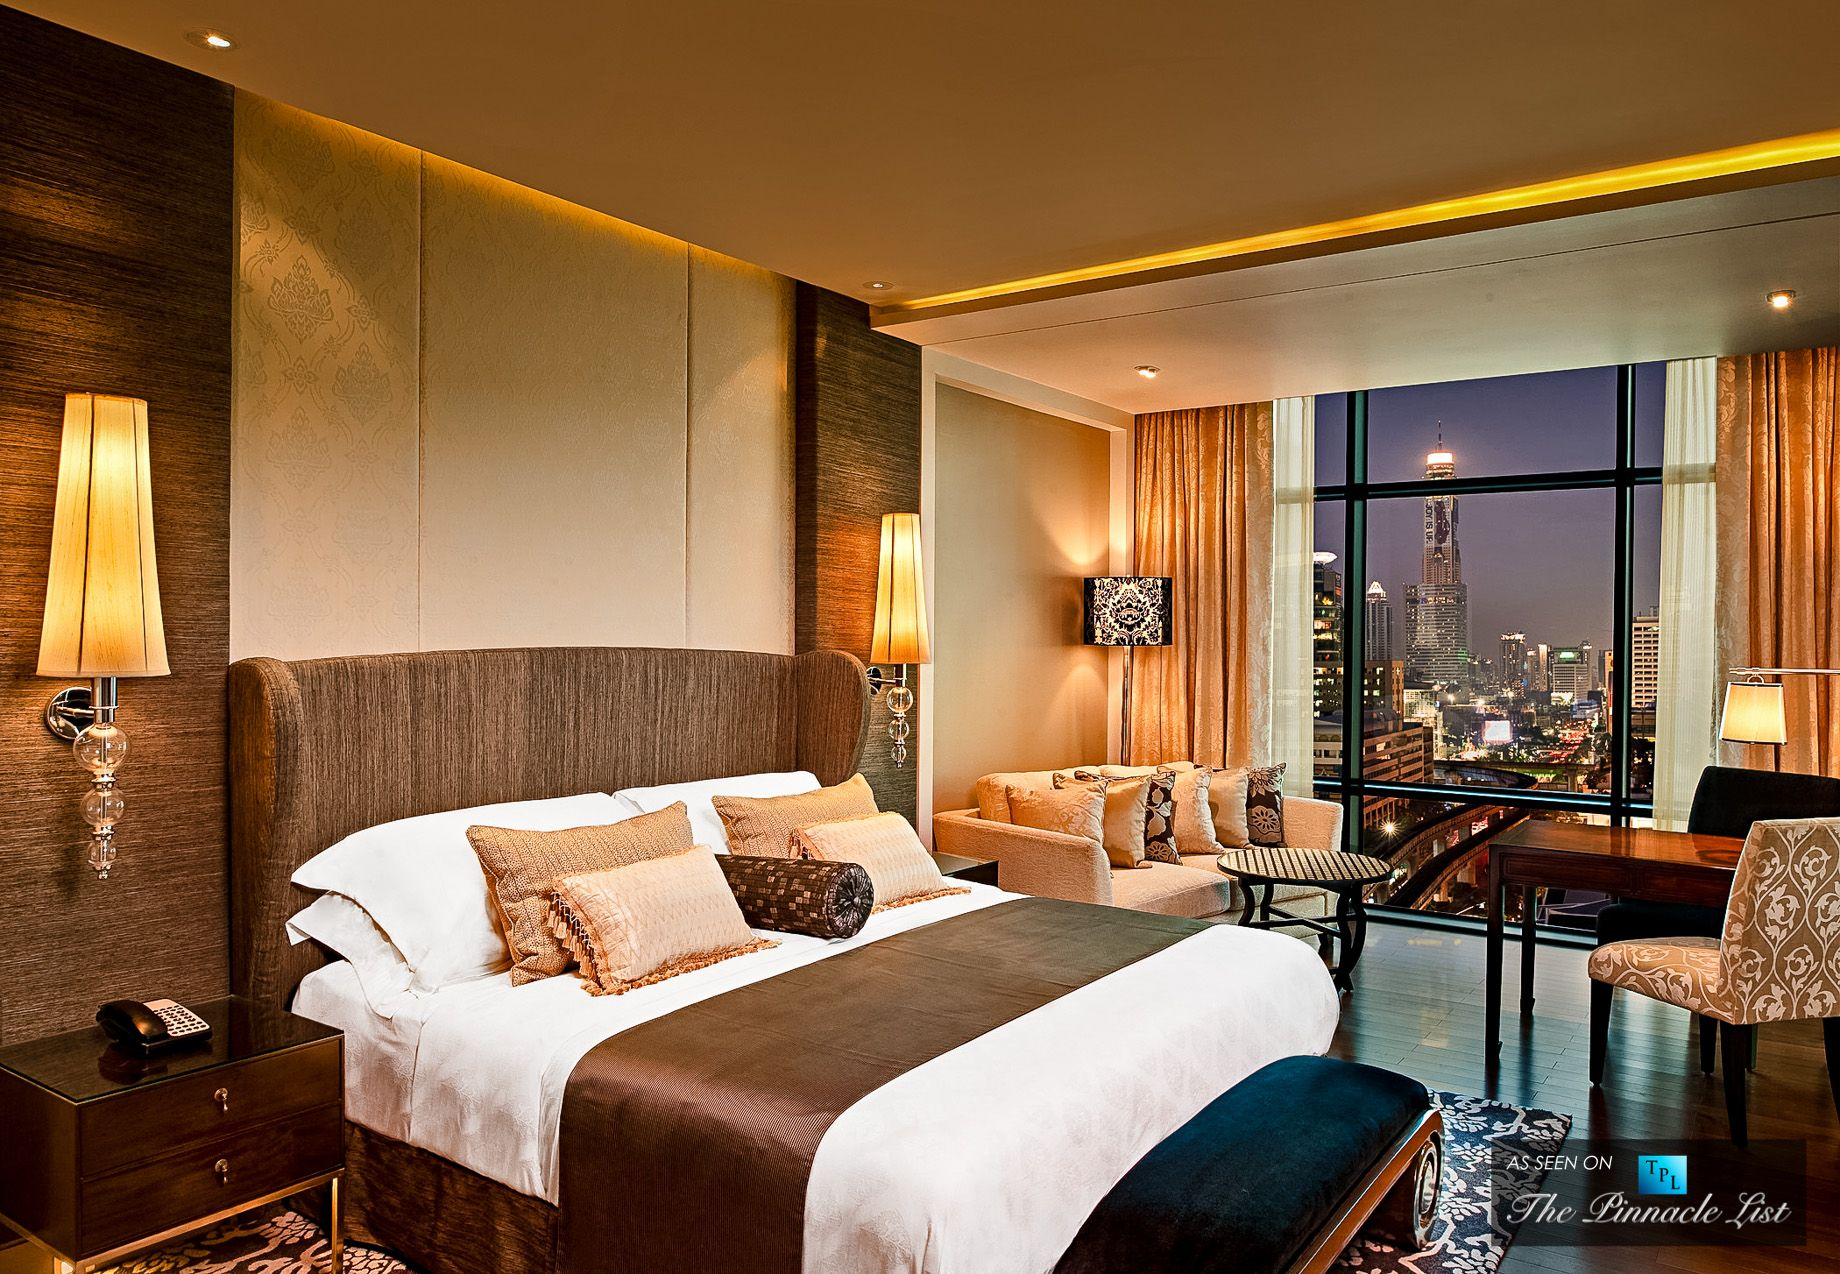 St regis luxury hotel bangkok thailand grand deluxe for Luxury hotel accommodation